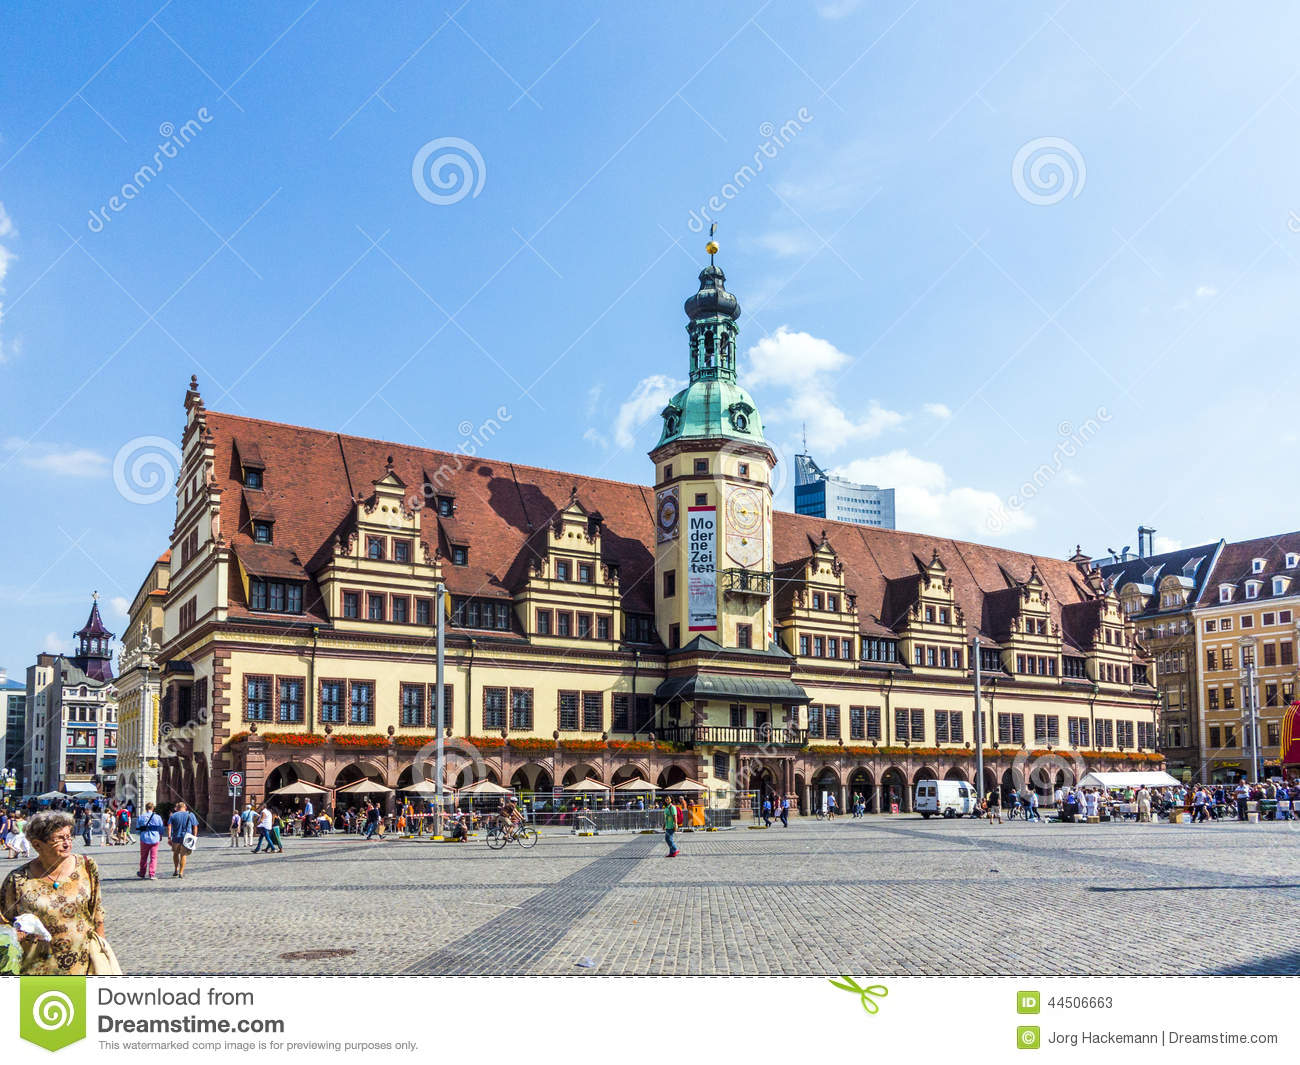 altes rathaus am marktplatz in leipzig redaktionelles stockfoto bild von markt aufsatz 44506663. Black Bedroom Furniture Sets. Home Design Ideas